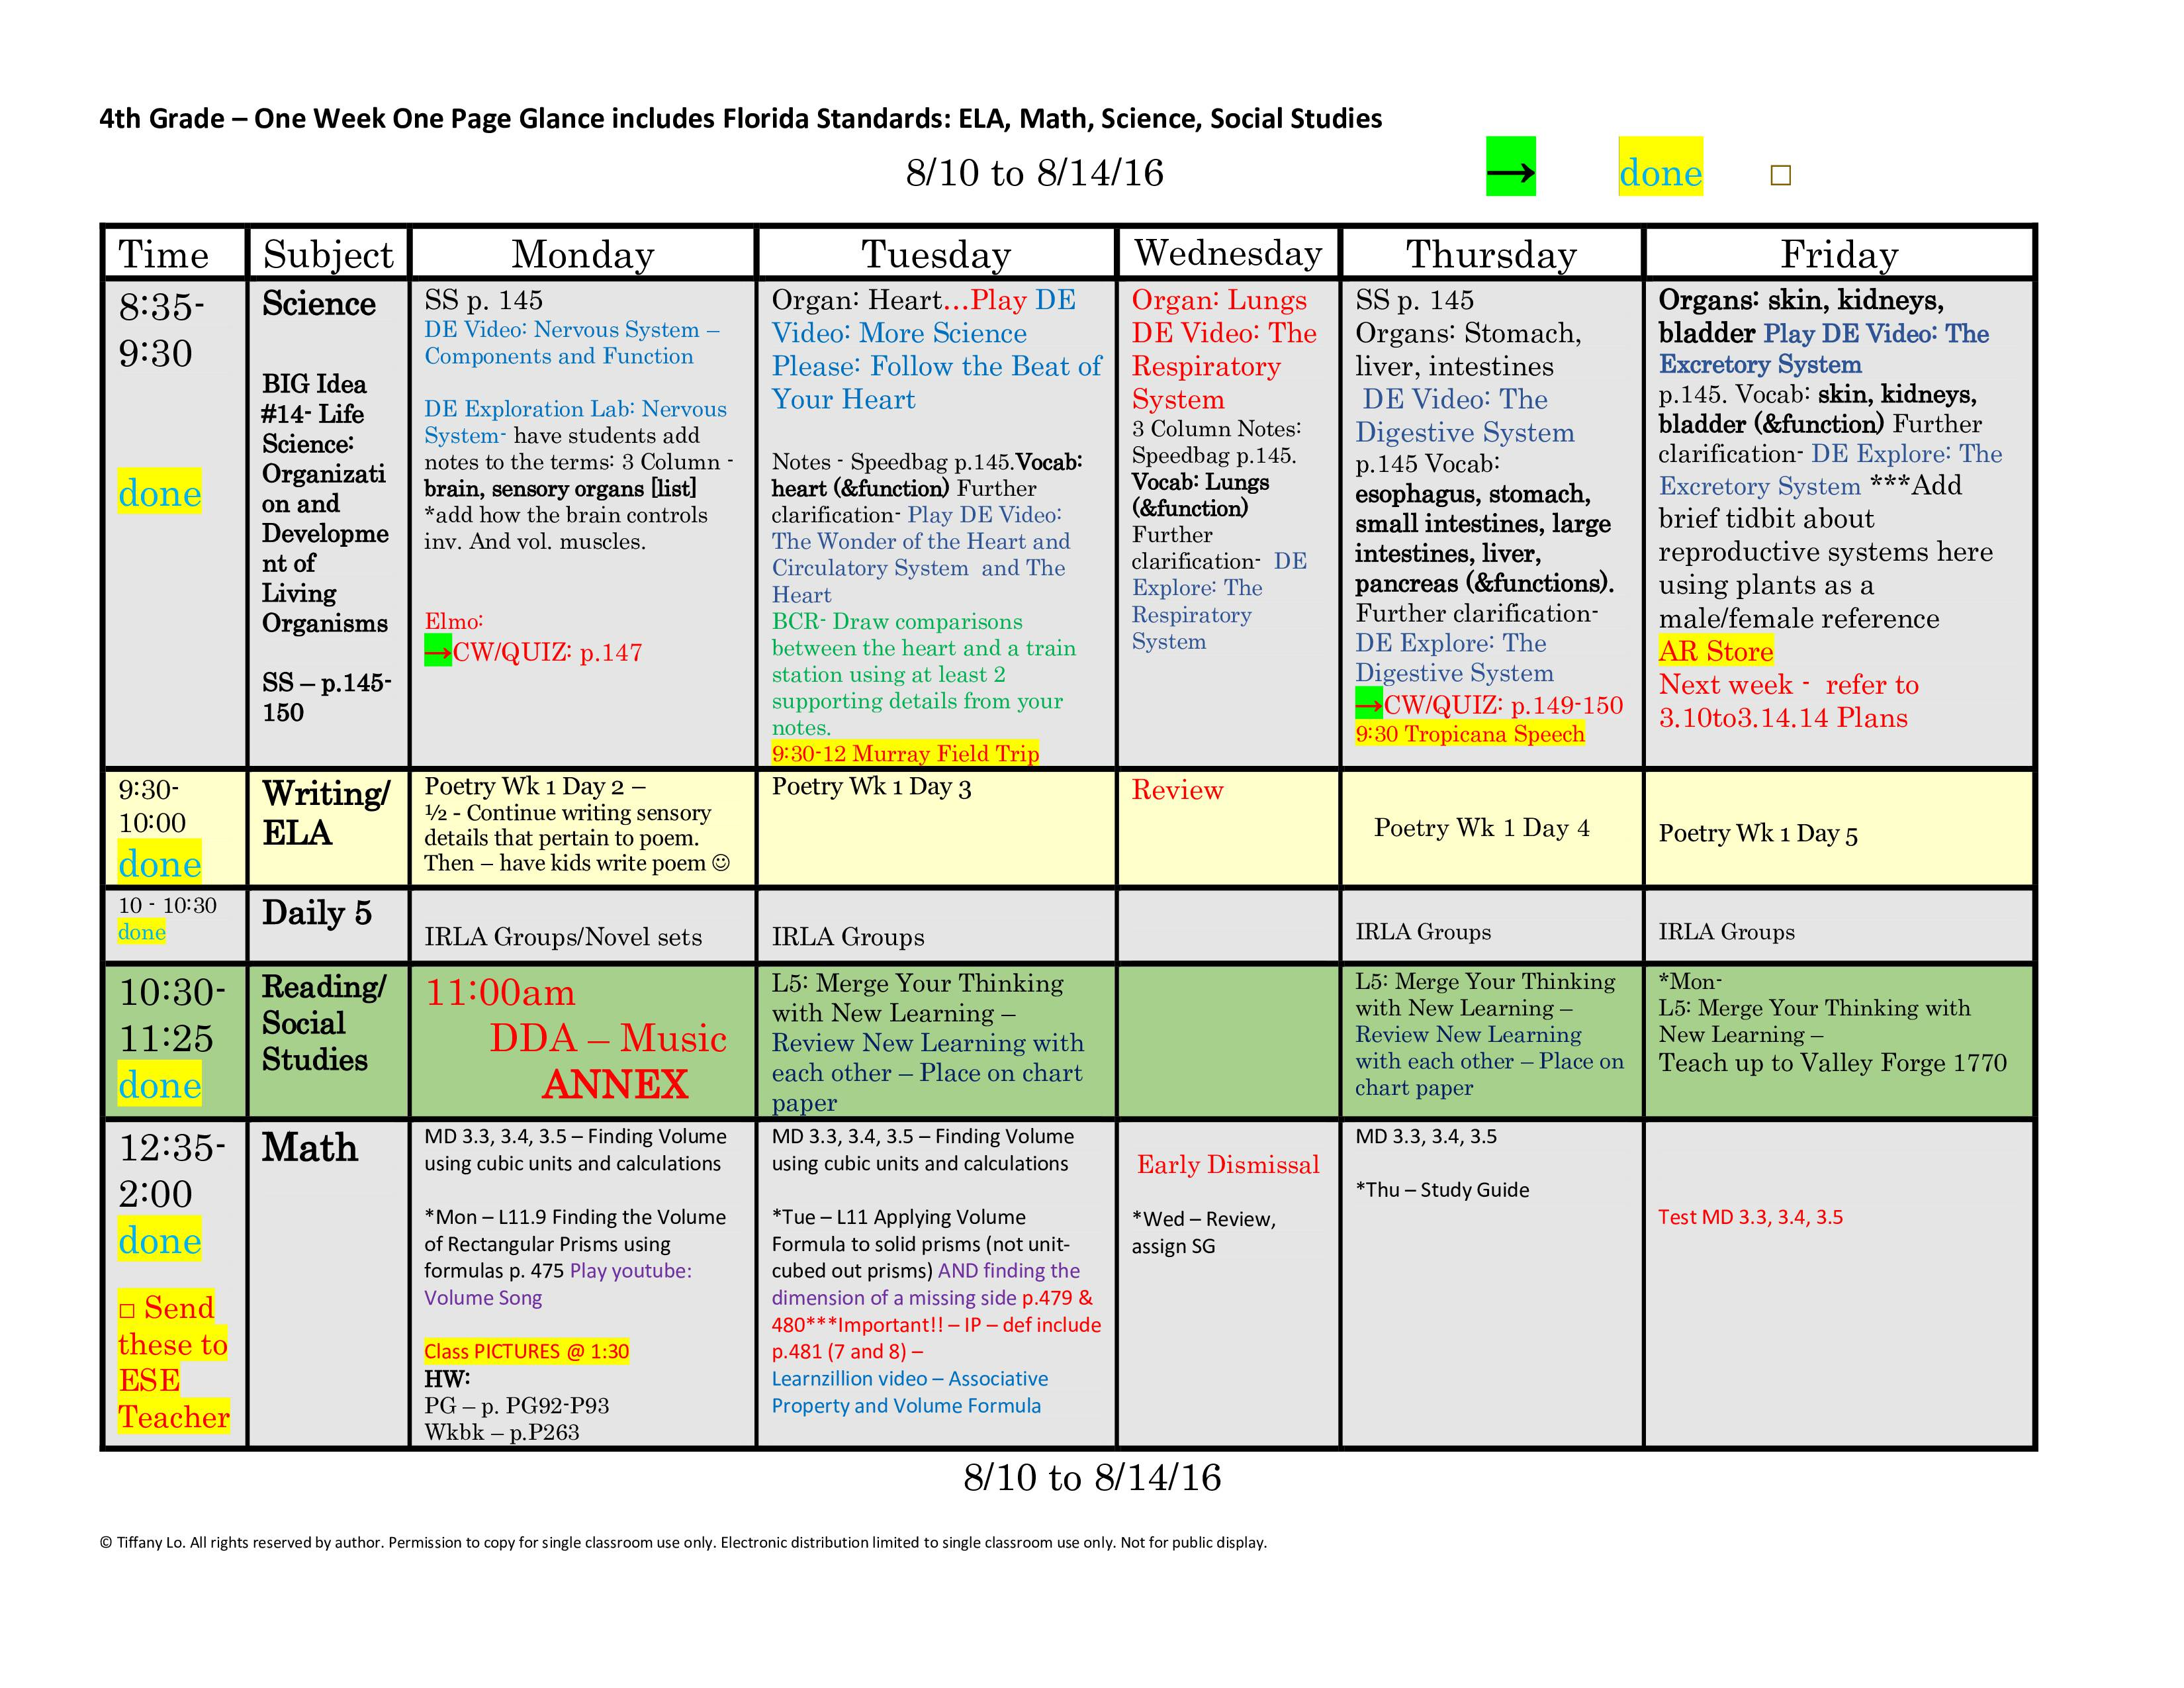 4th Fourth Grade Florida Standards Weekly Lesson Plan